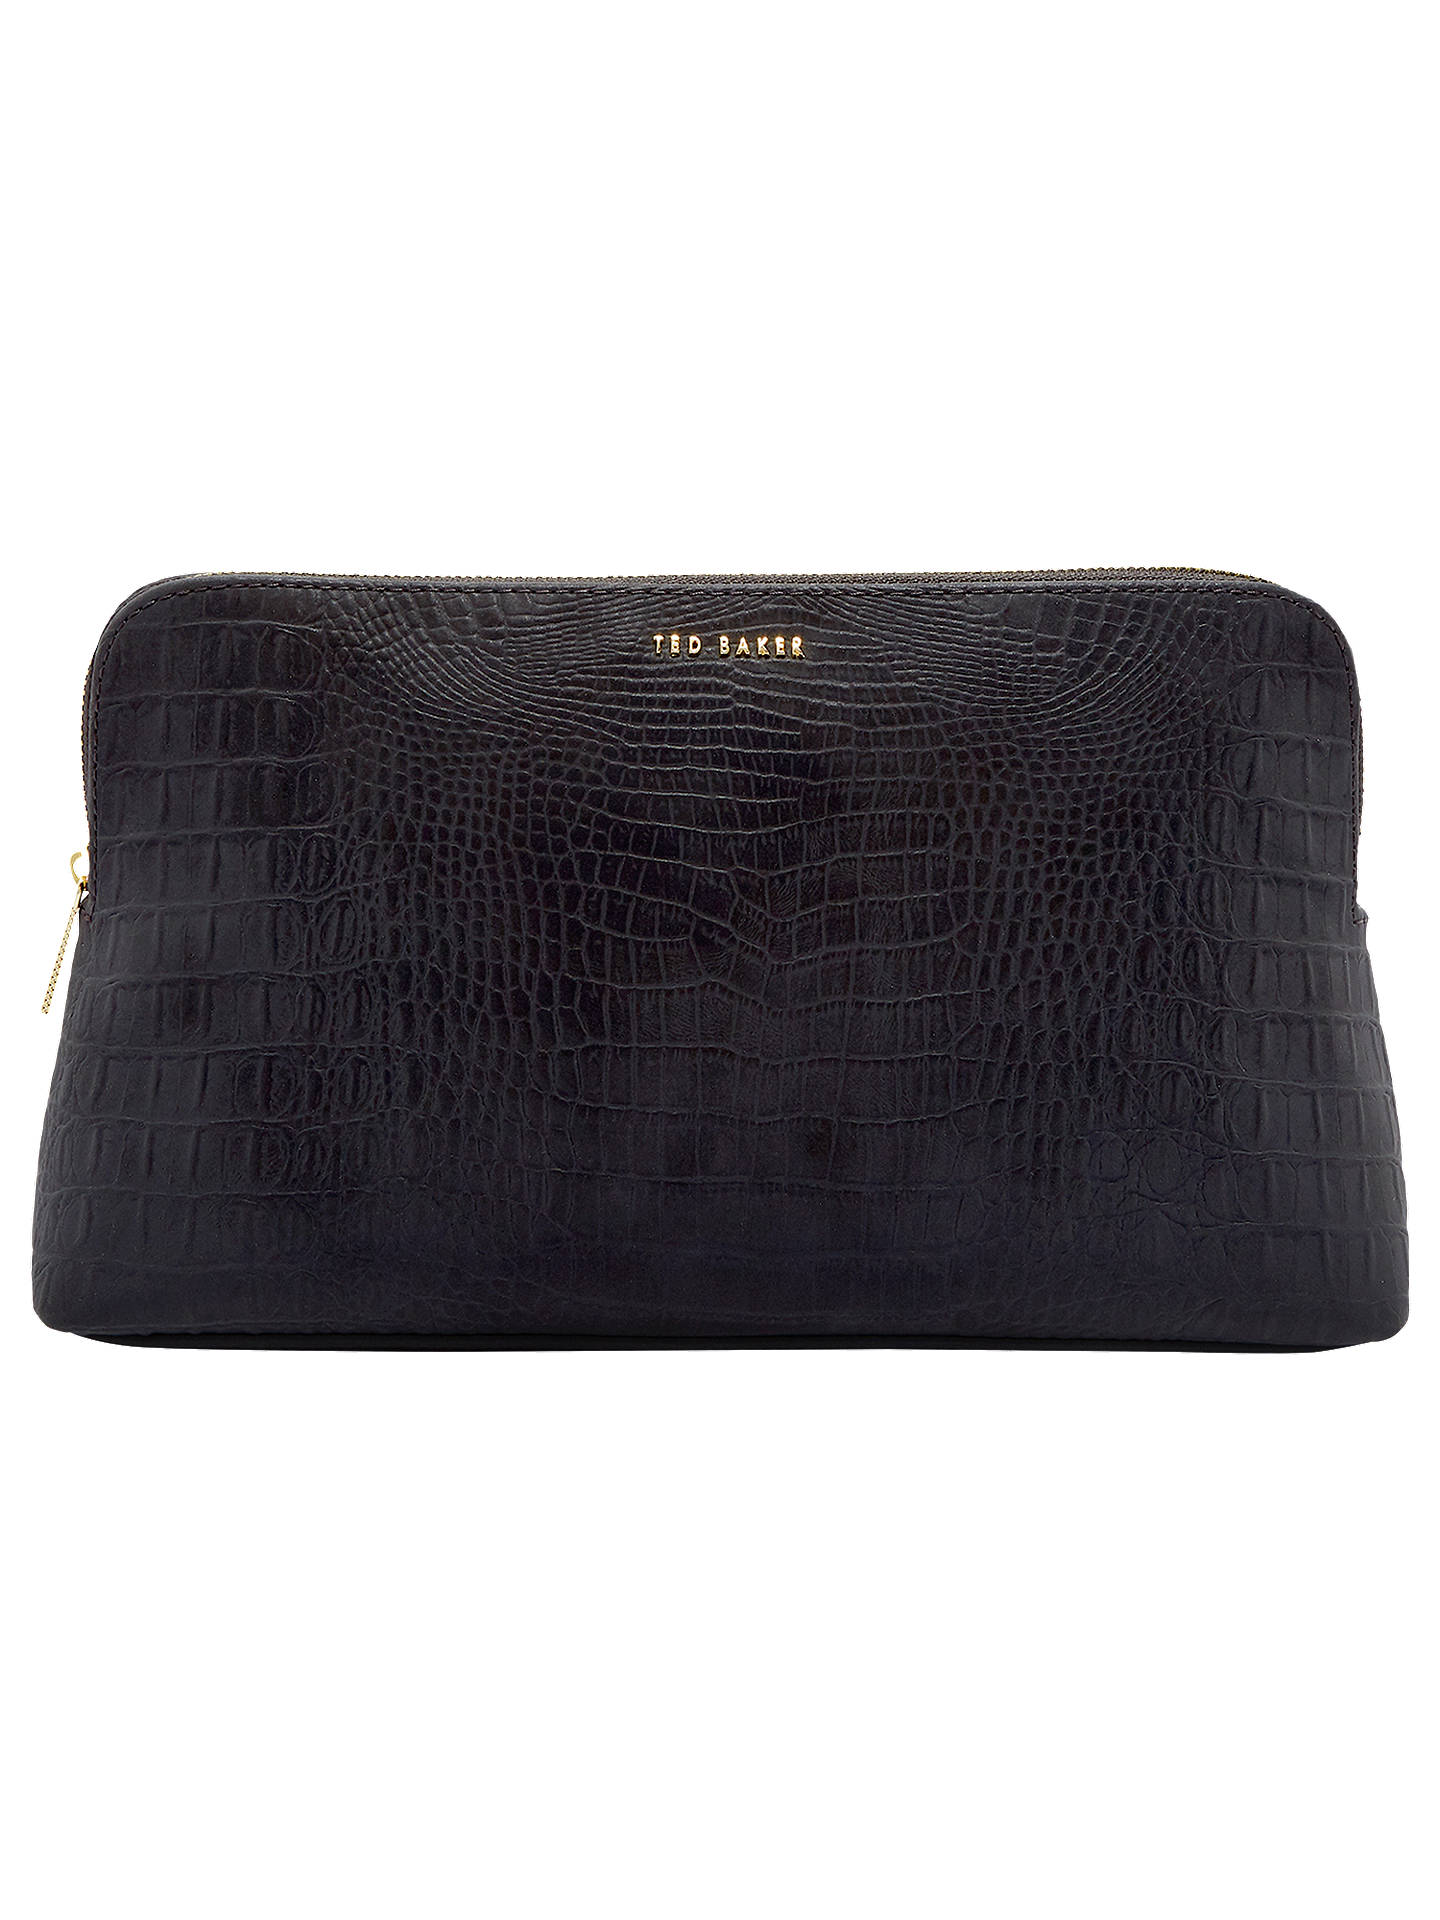 e2d54bc34 Ted Baker Tawny Croc Effect Wash Bag at John Lewis   Partners